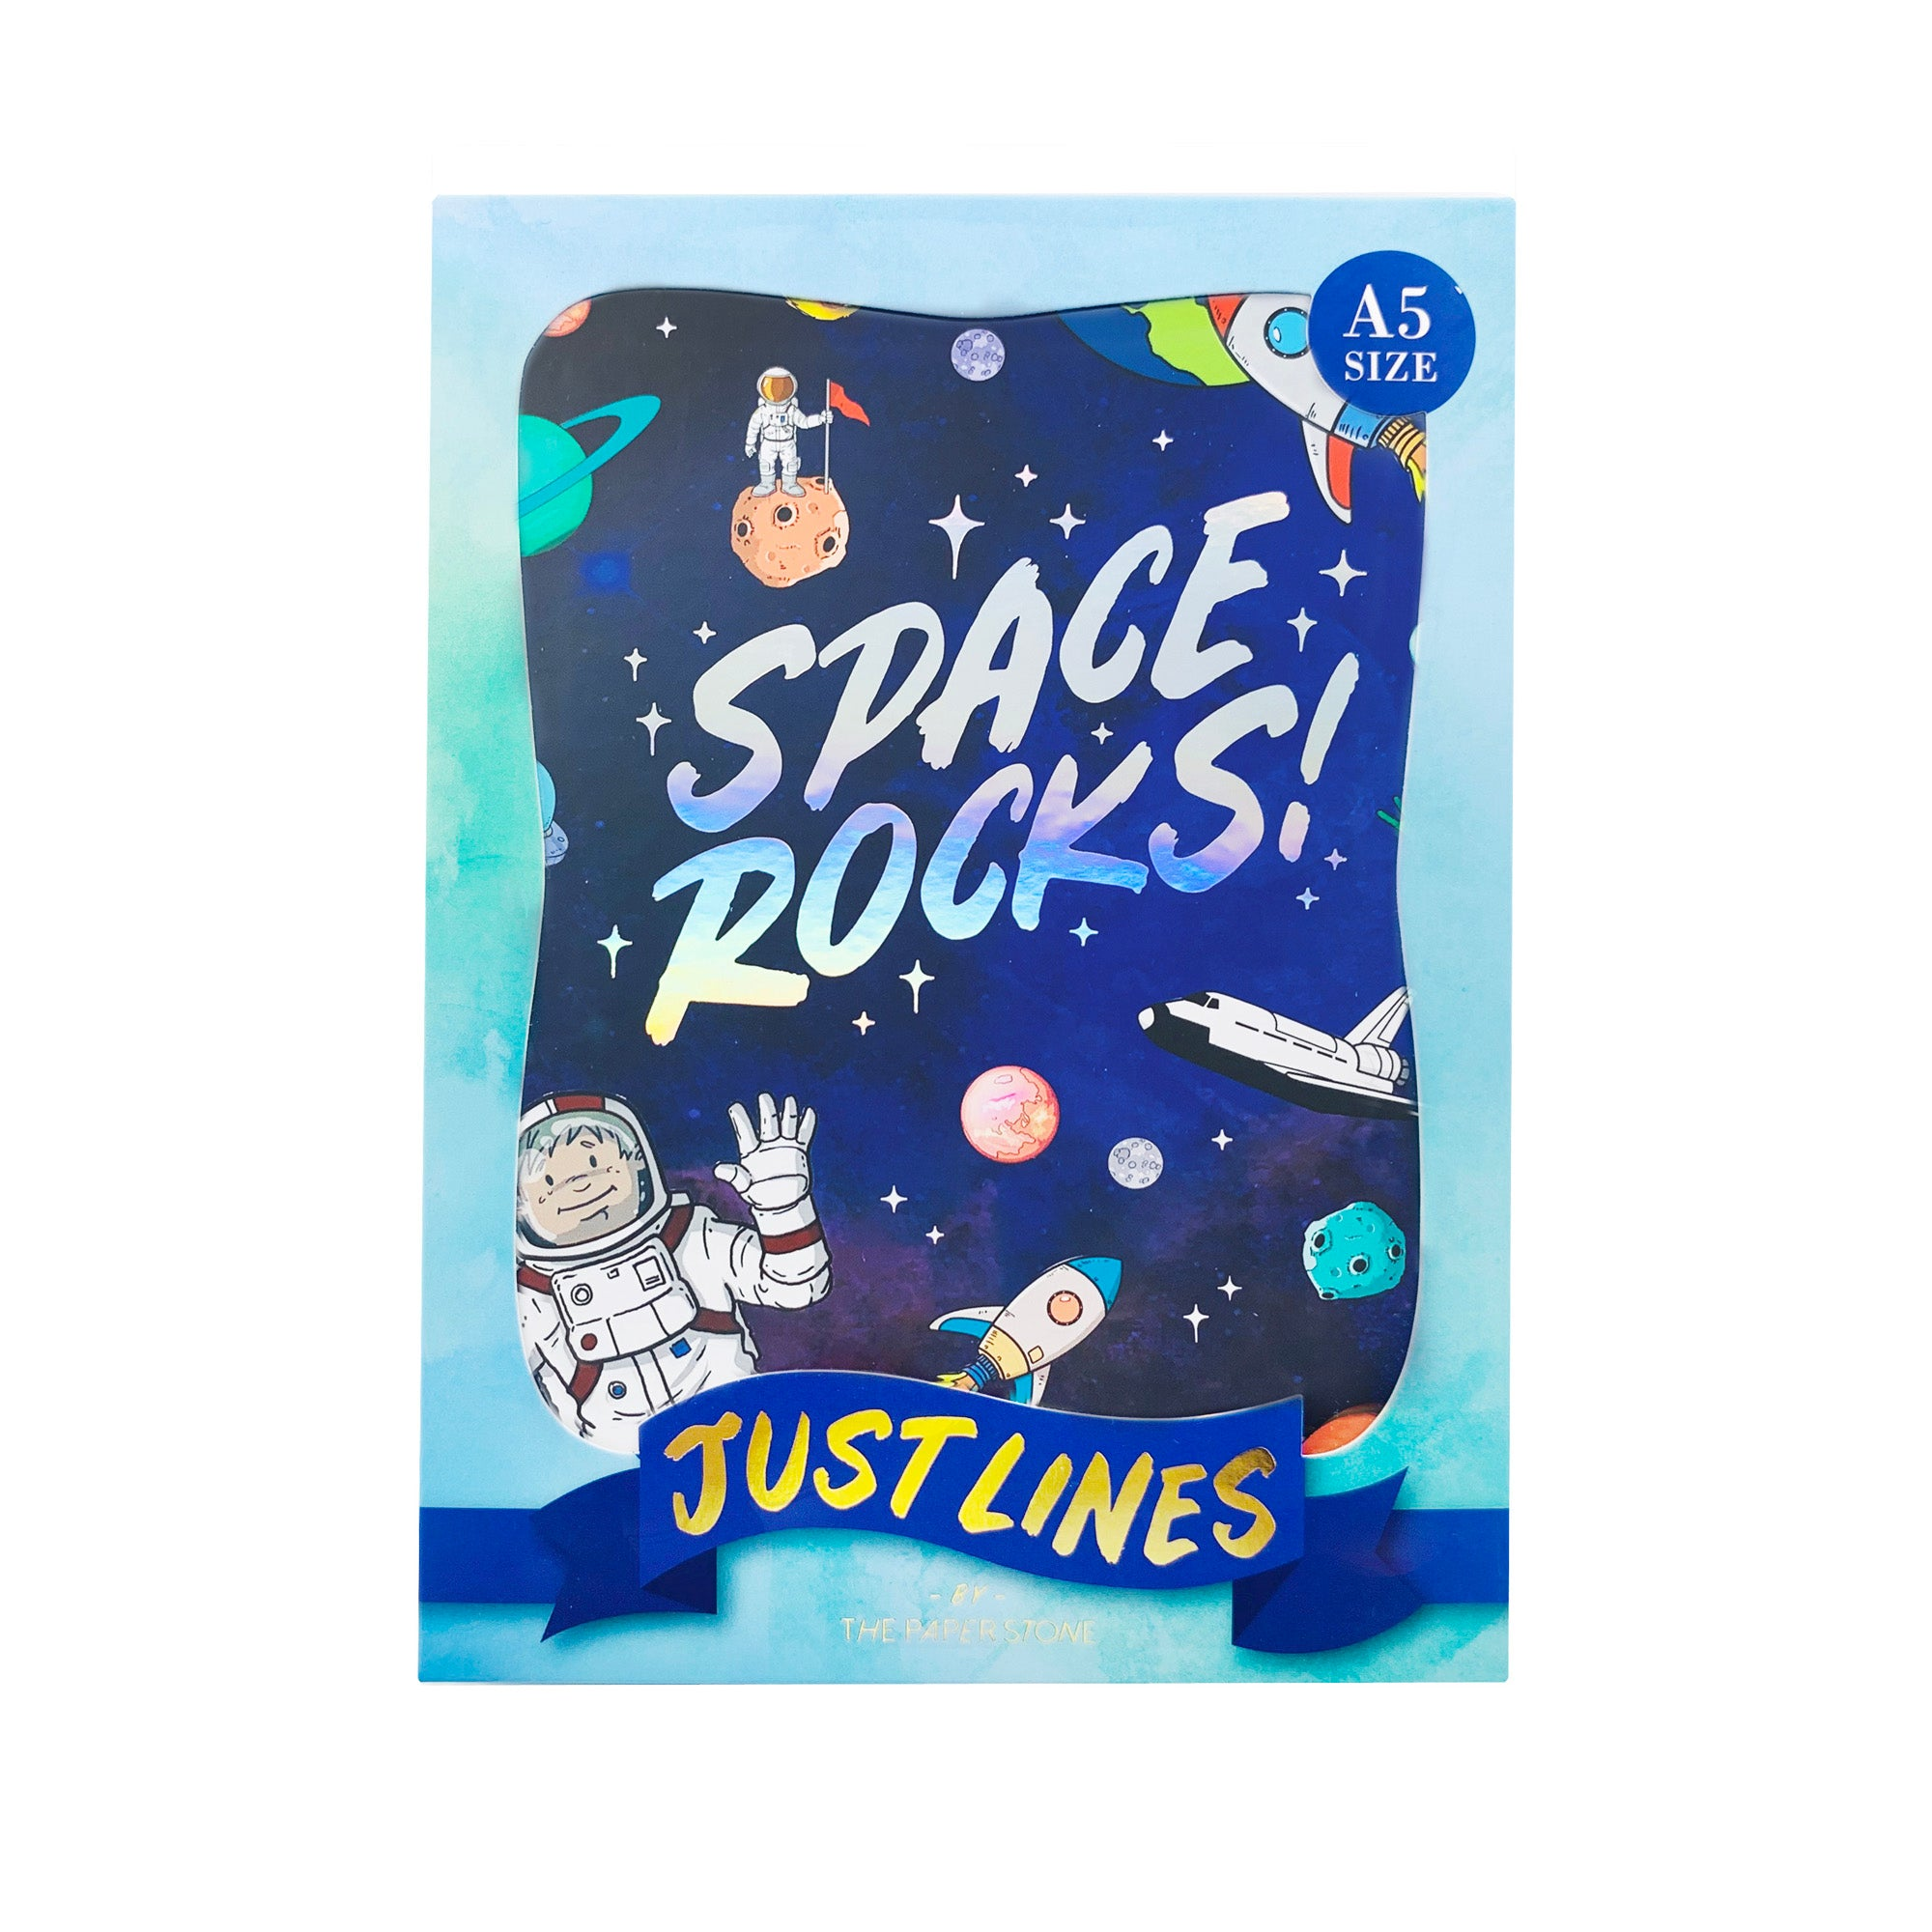 Just Lines - Space Rocks